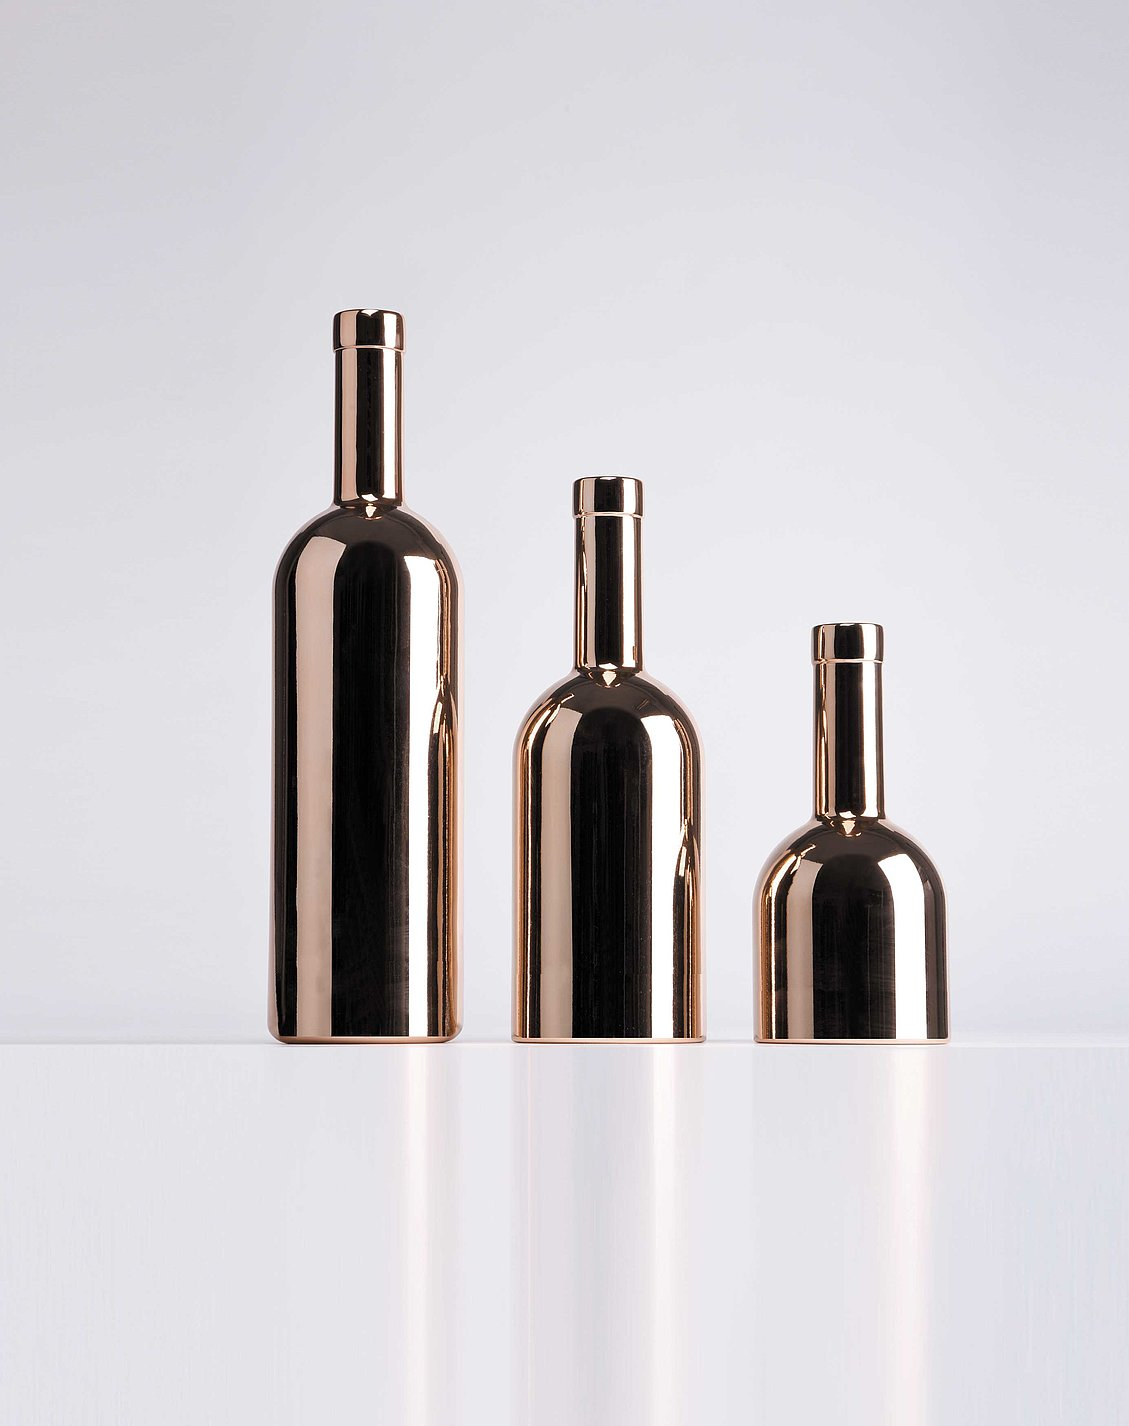 Trisection Winebottle Design | Red Dot Design Award